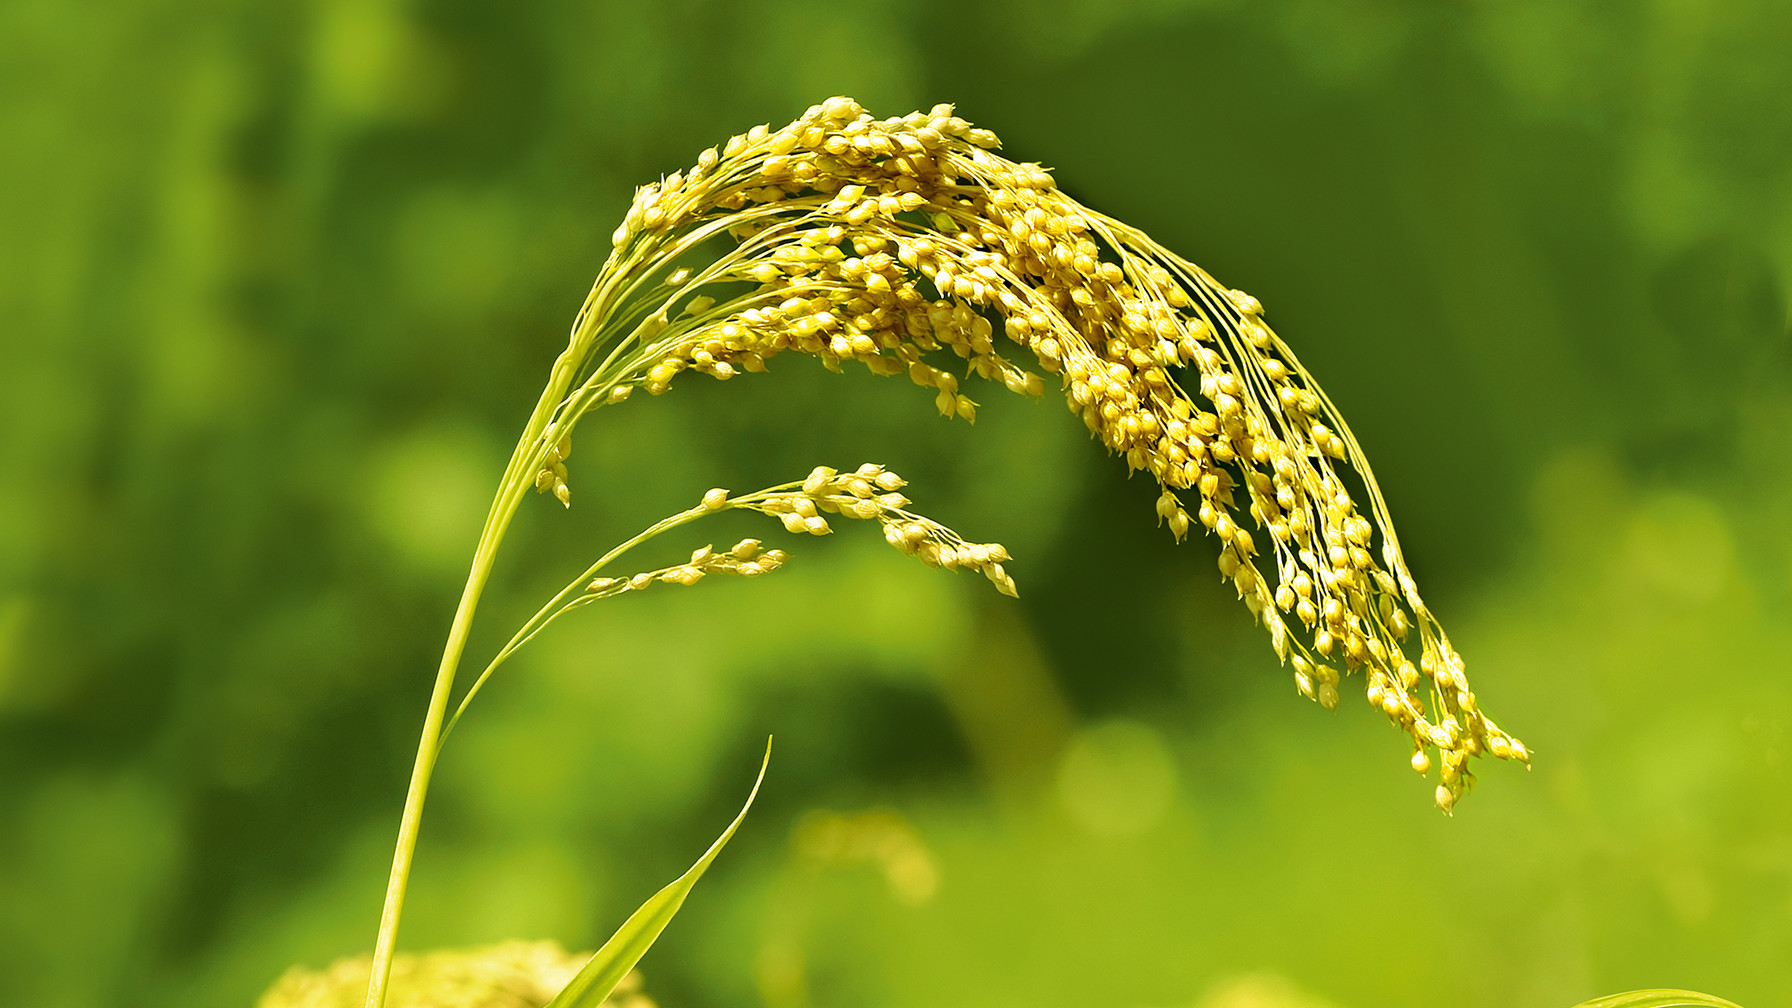 Image of millet plant